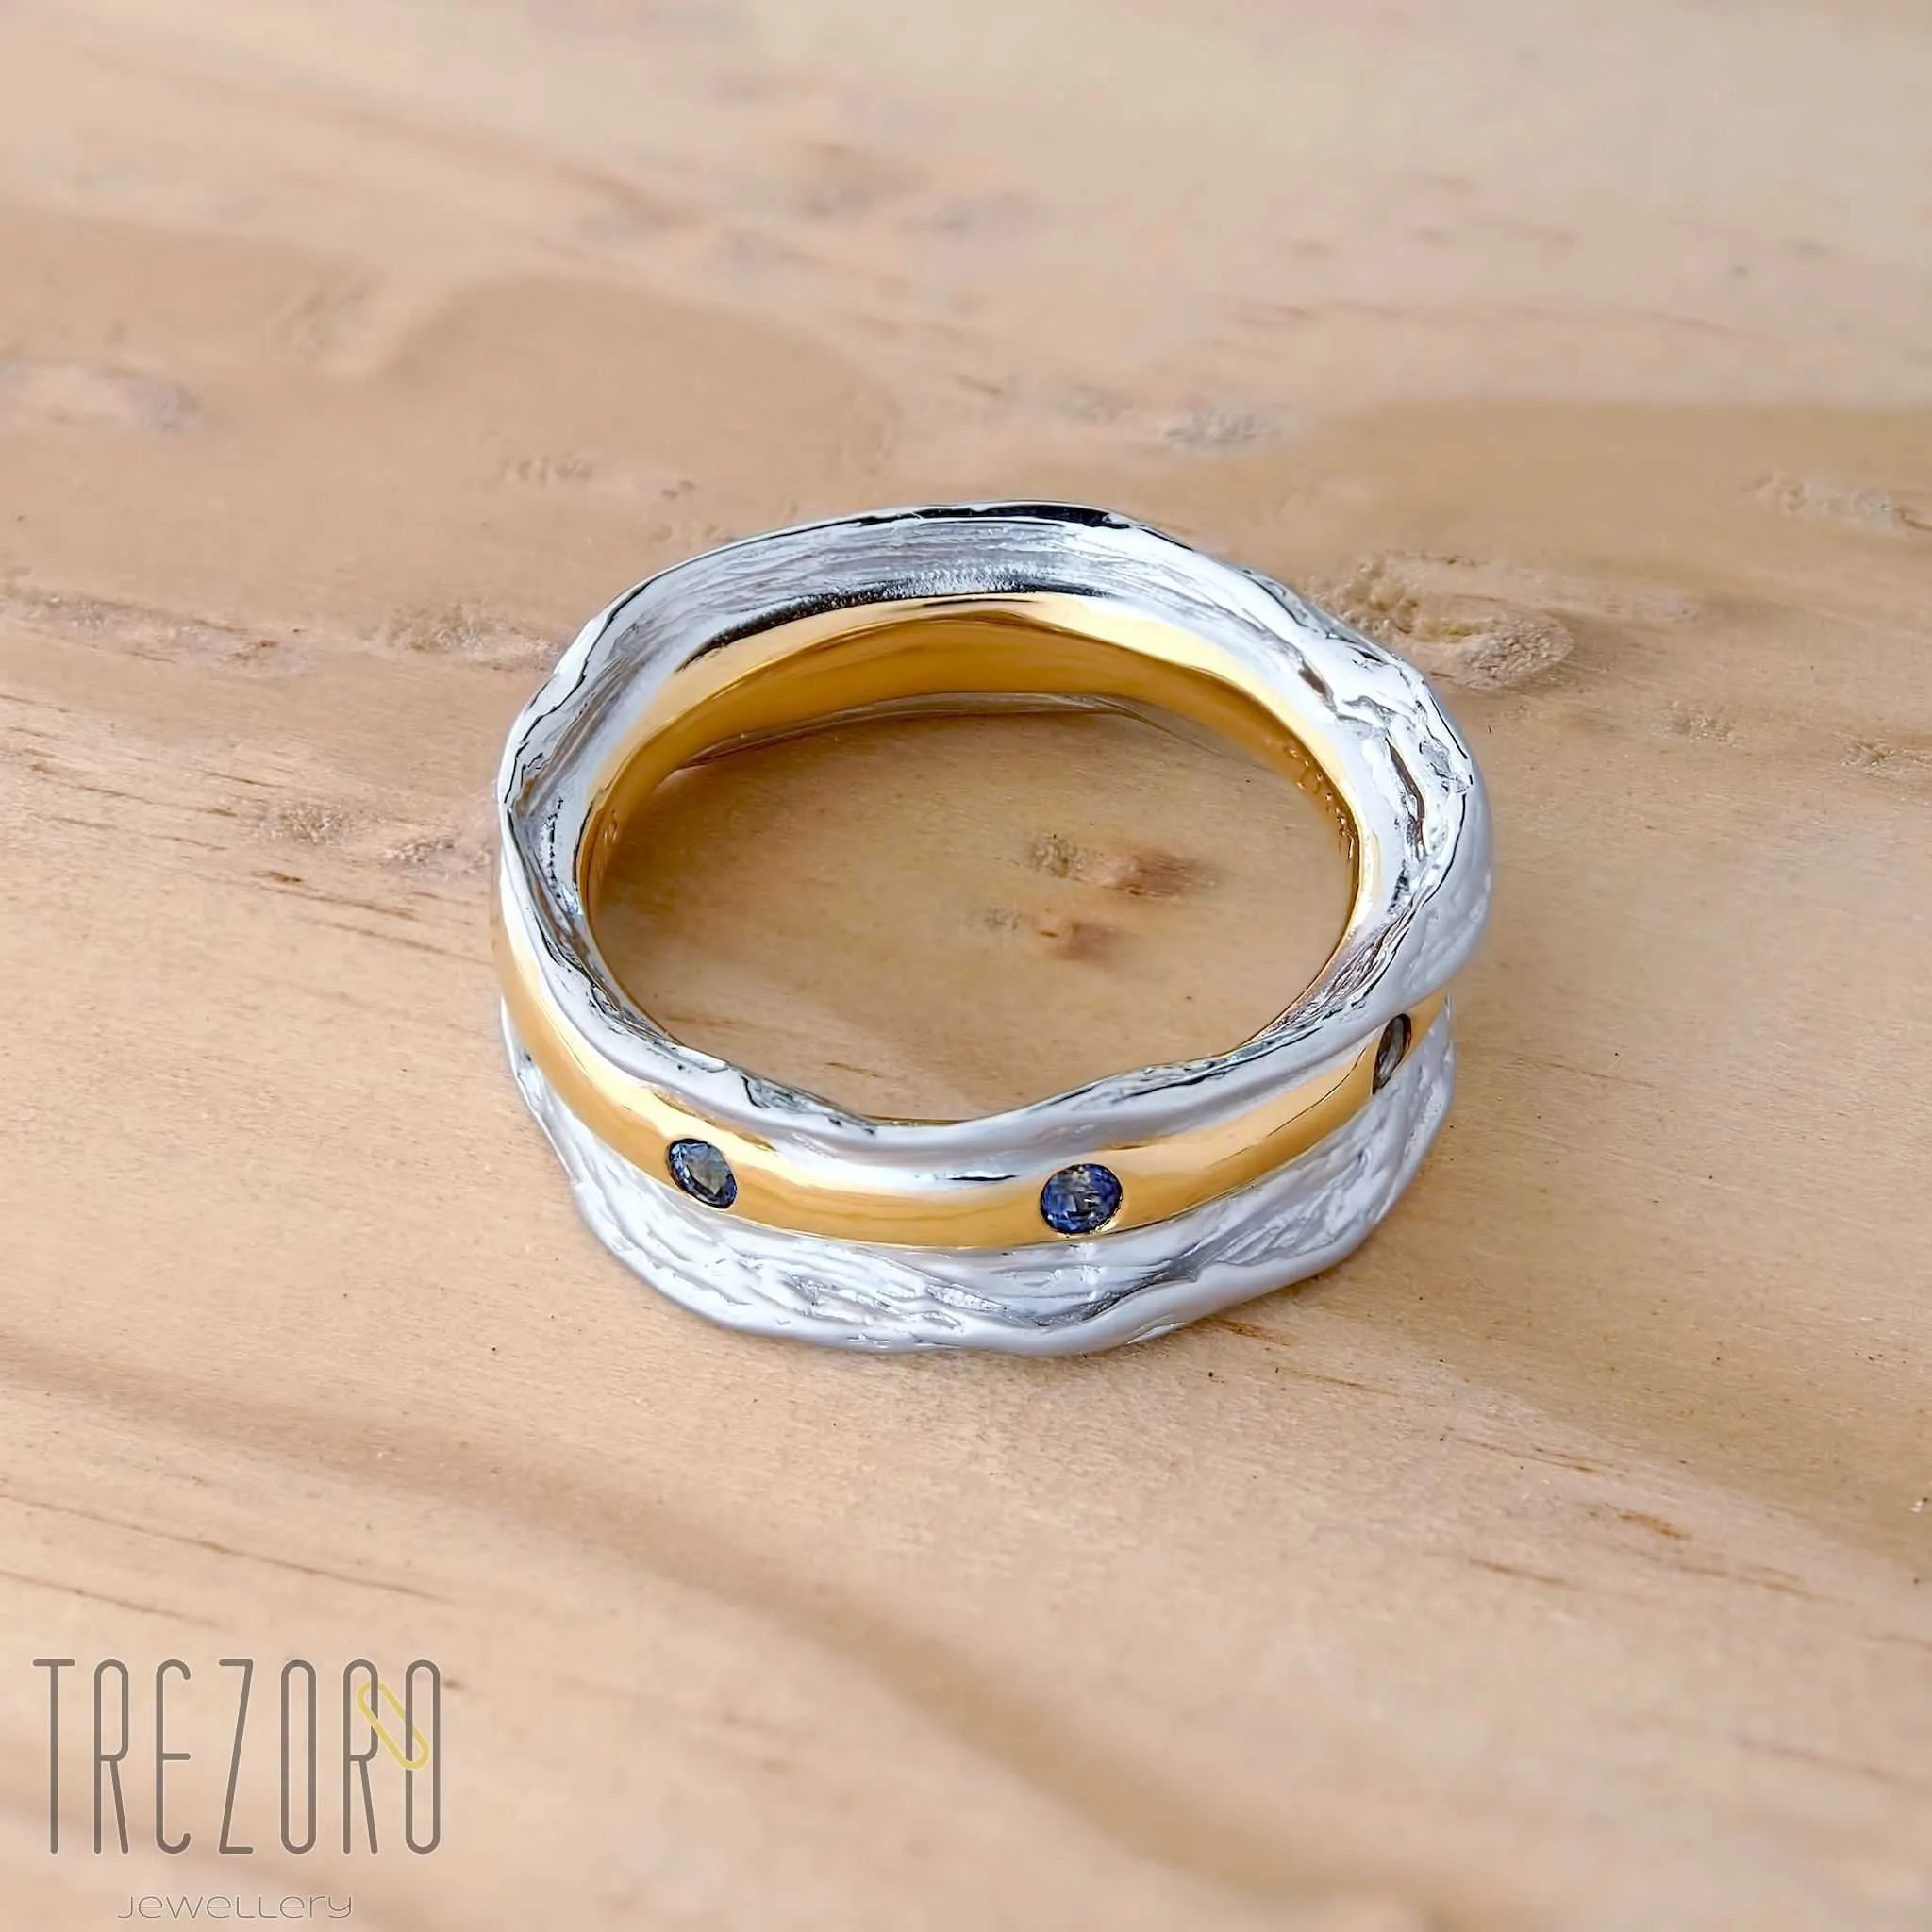 Queen' Message Ring Trezoro Jewellery